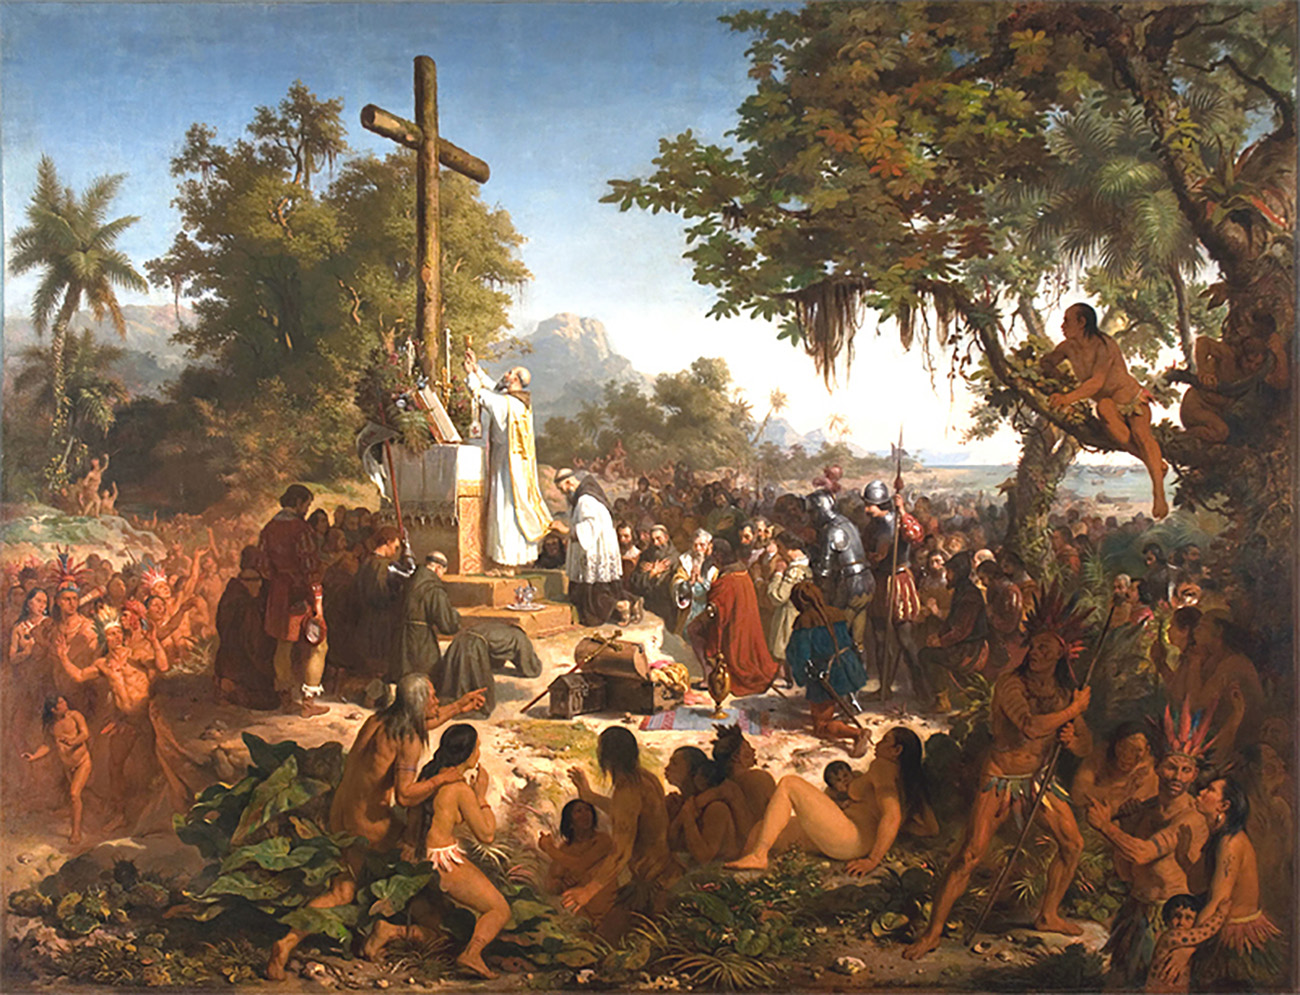 Painting of a white priest praising a wood cross. He is surrounded by Europeans and indigenous Brazilians.